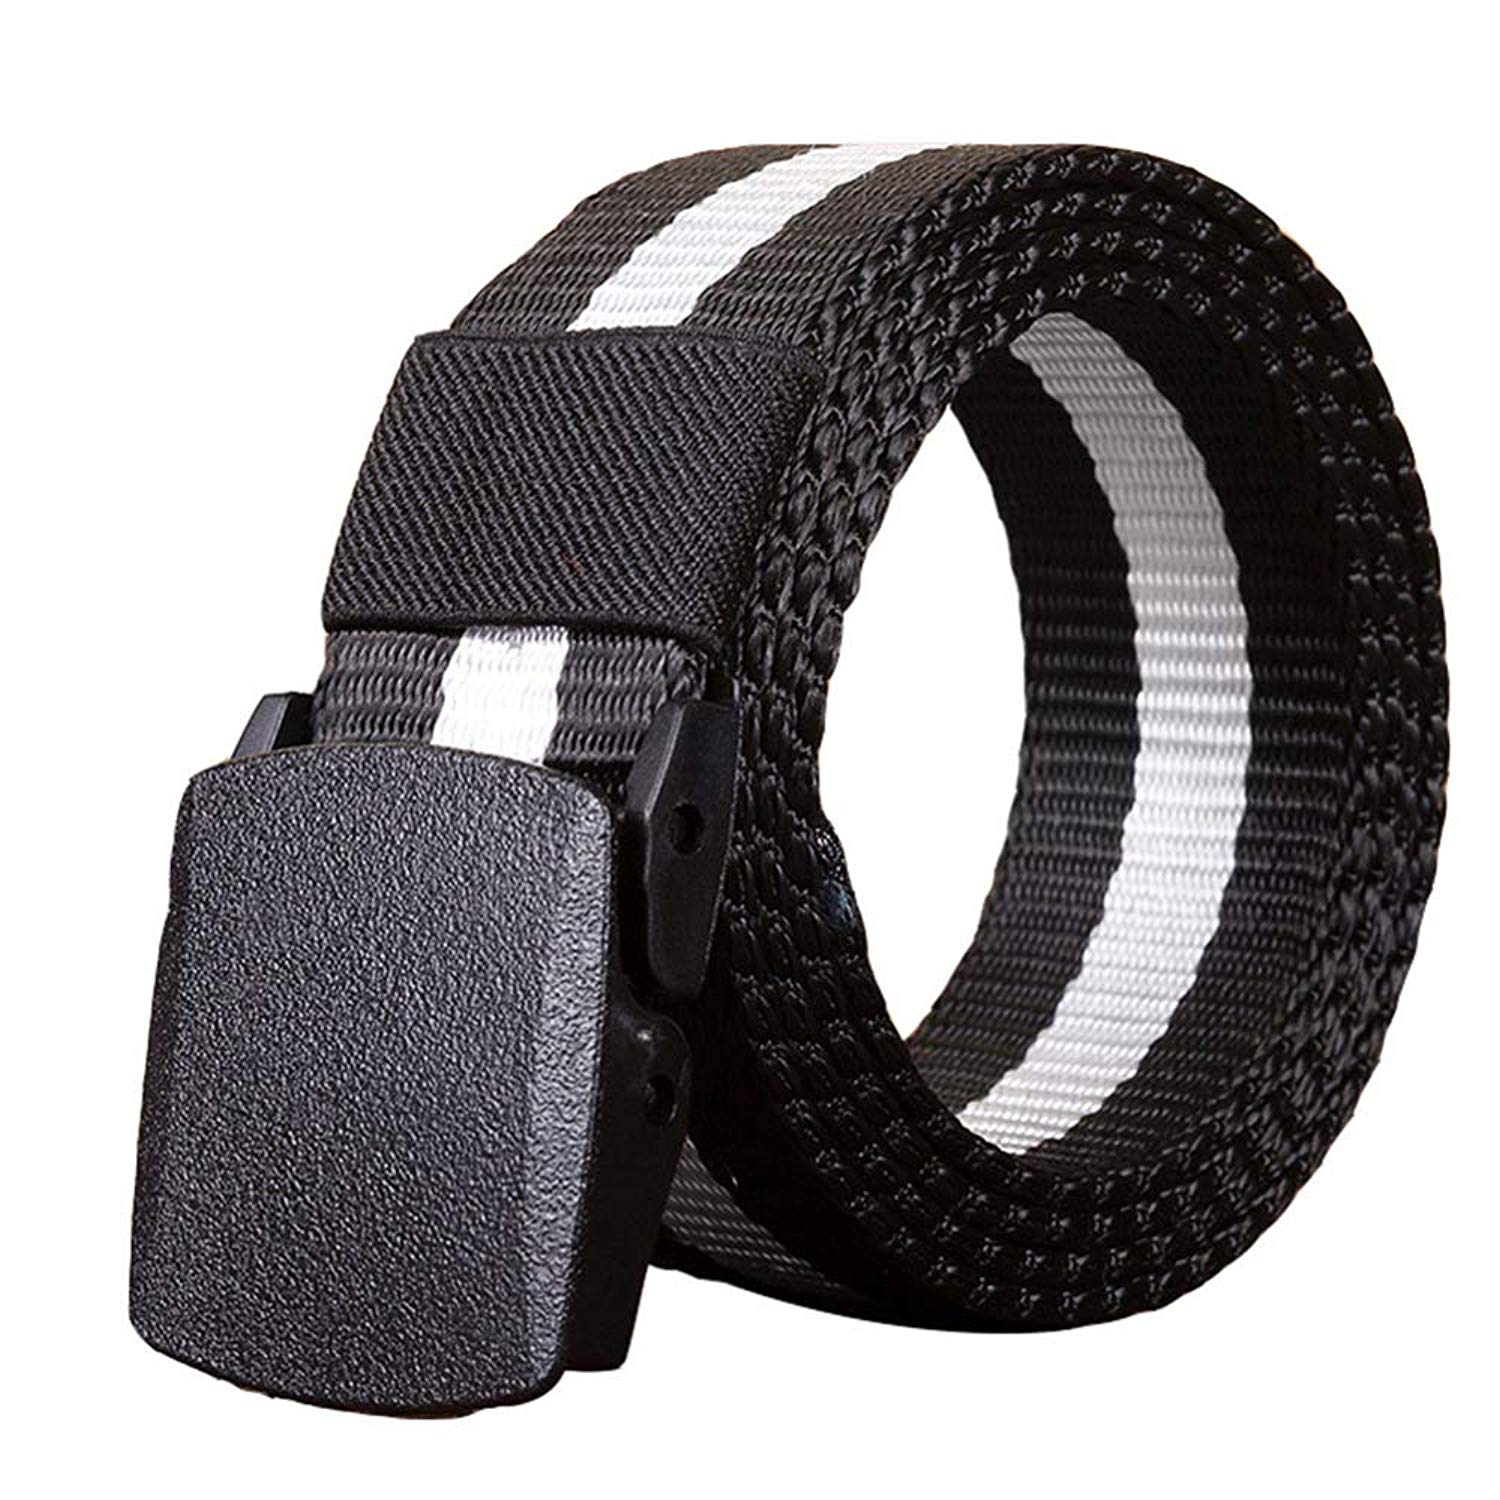 sourcingmap Unisex Canvas Web Belt with Metal Slide Buckle Width 1 1//2 Inches